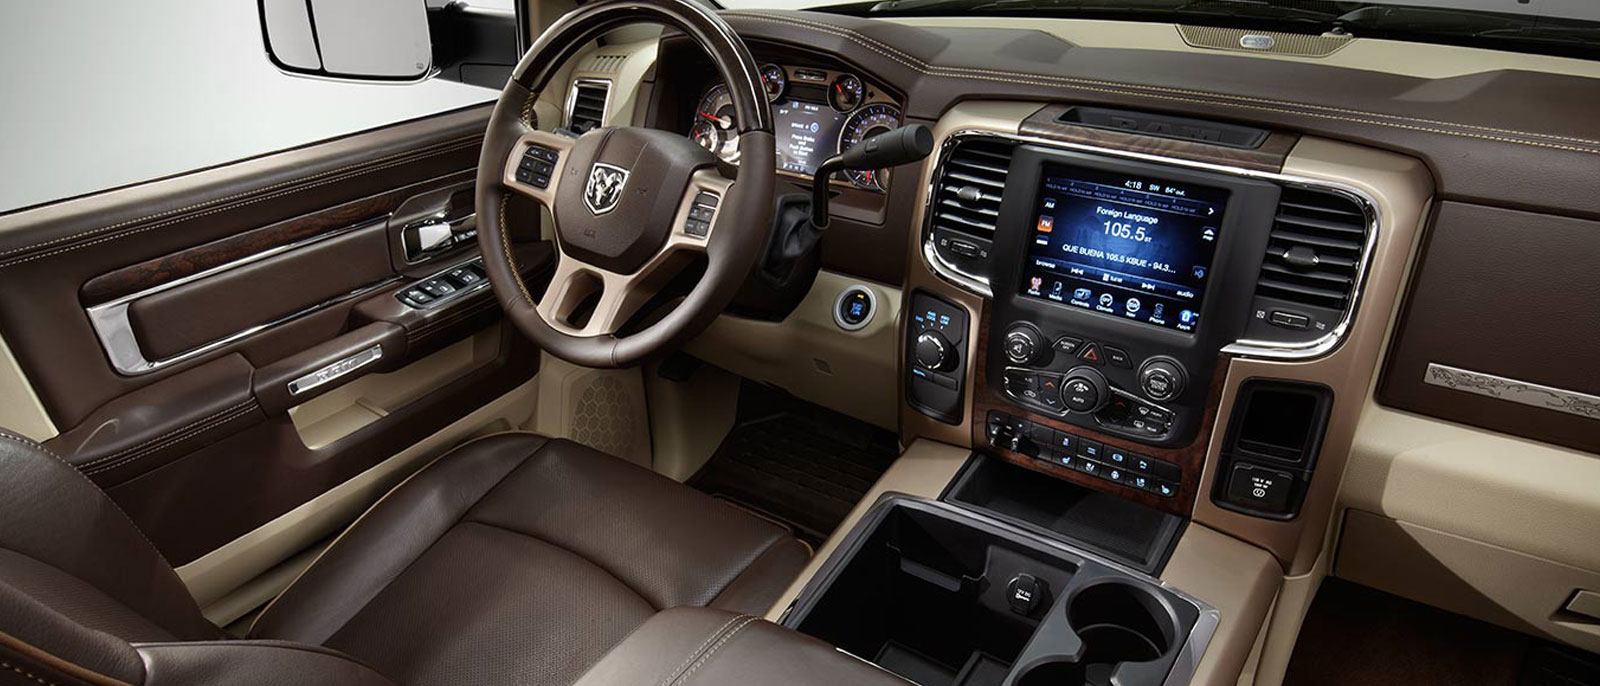 2015 Ram 3500 Interior ... Photo